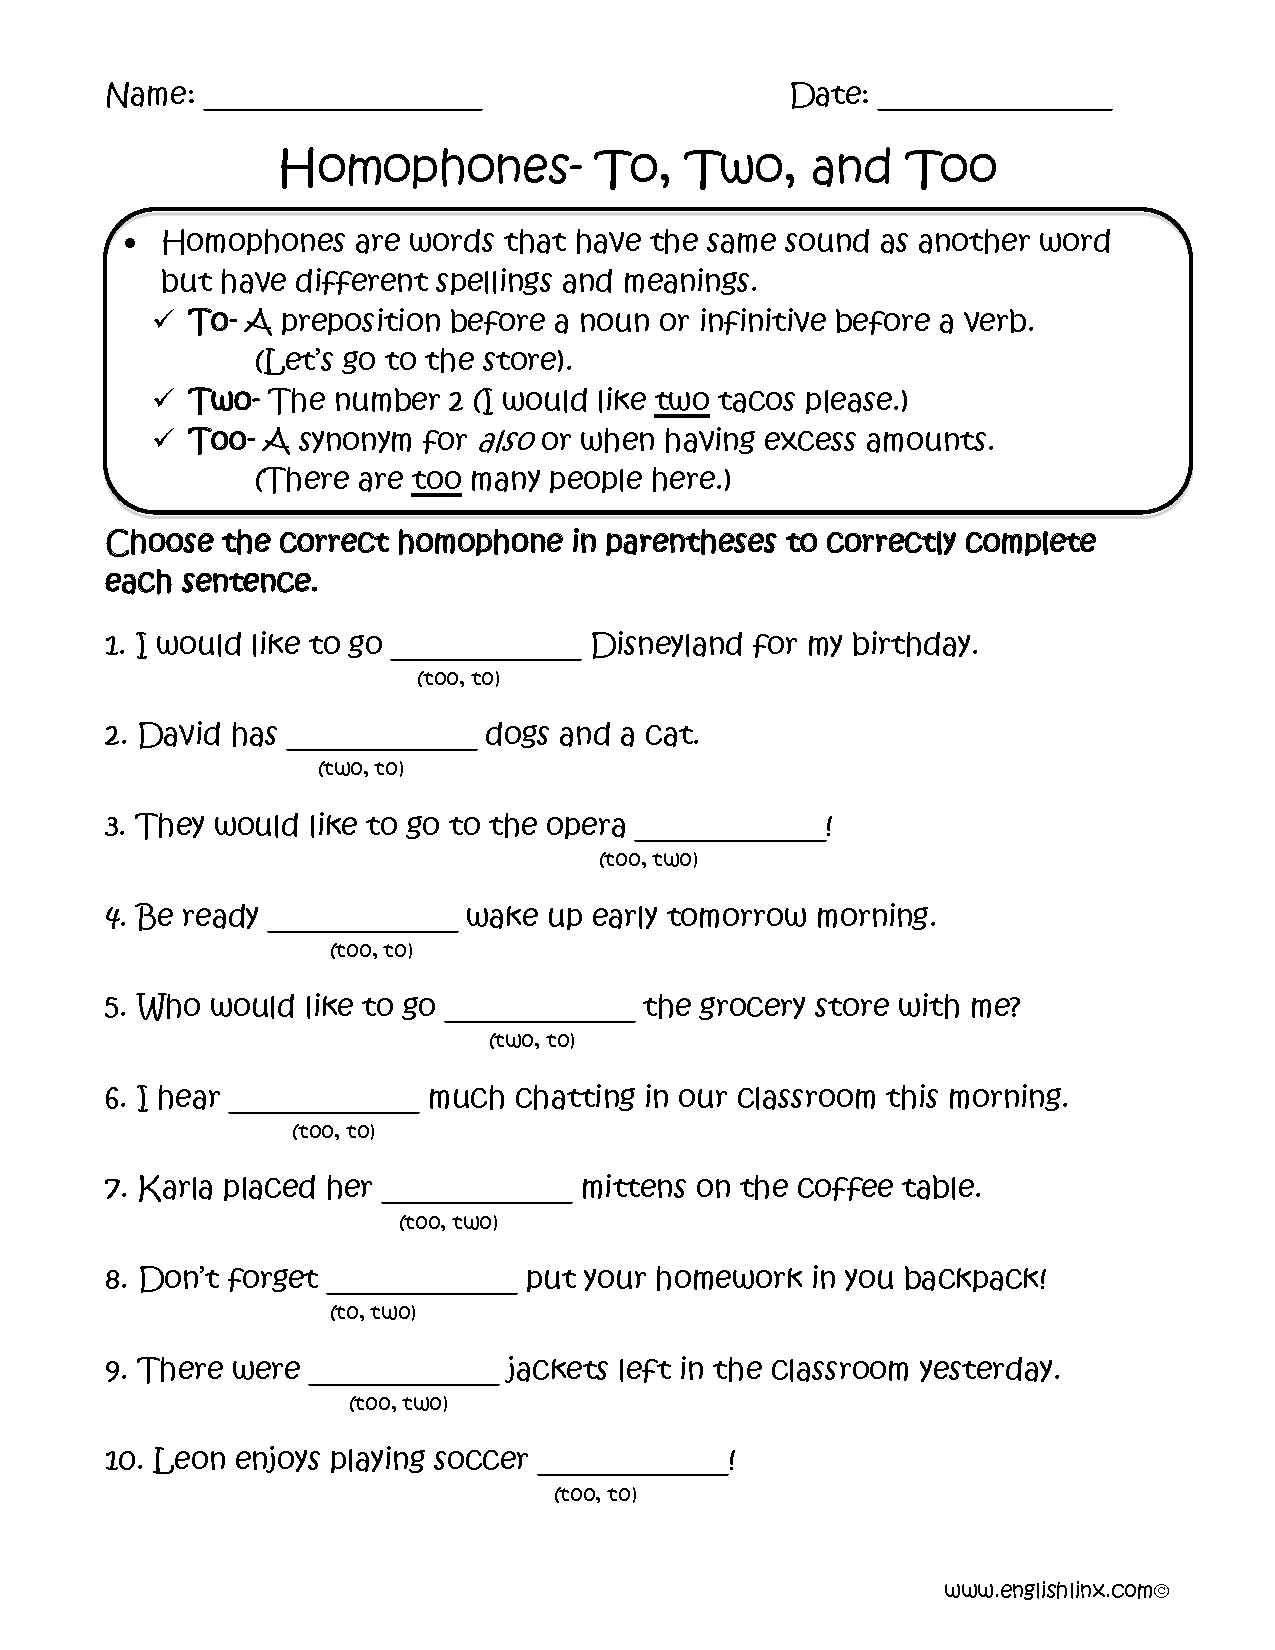 17 Best Images Of 4th Grade Sentence Structure Worksheets